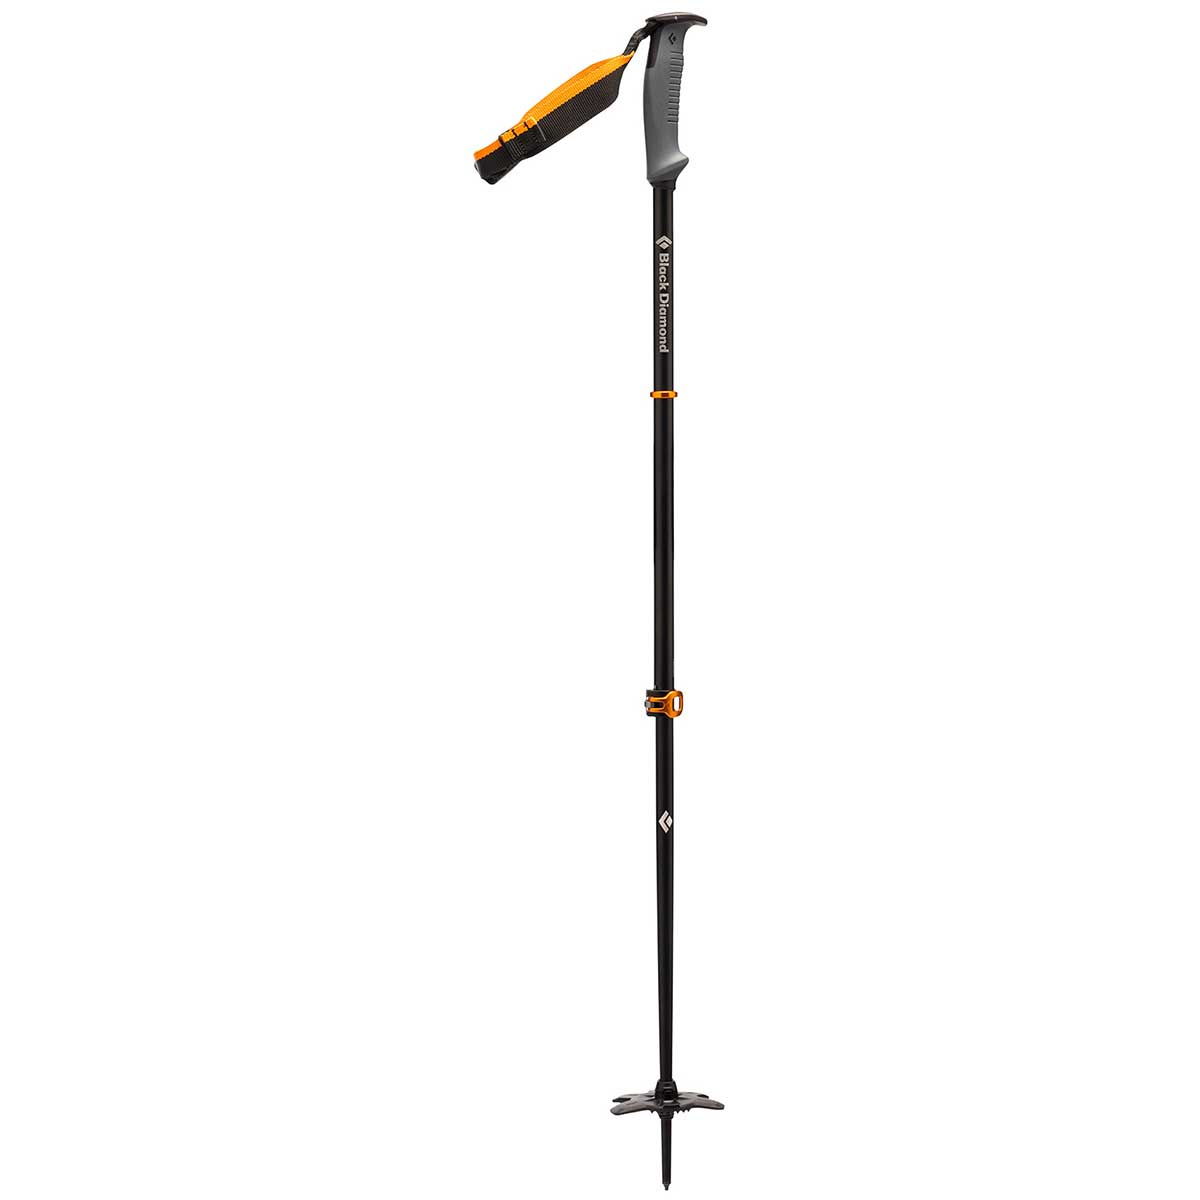 Black Diamond Traverse WR 2 Ski Pole in Grey and Black and Orange main view